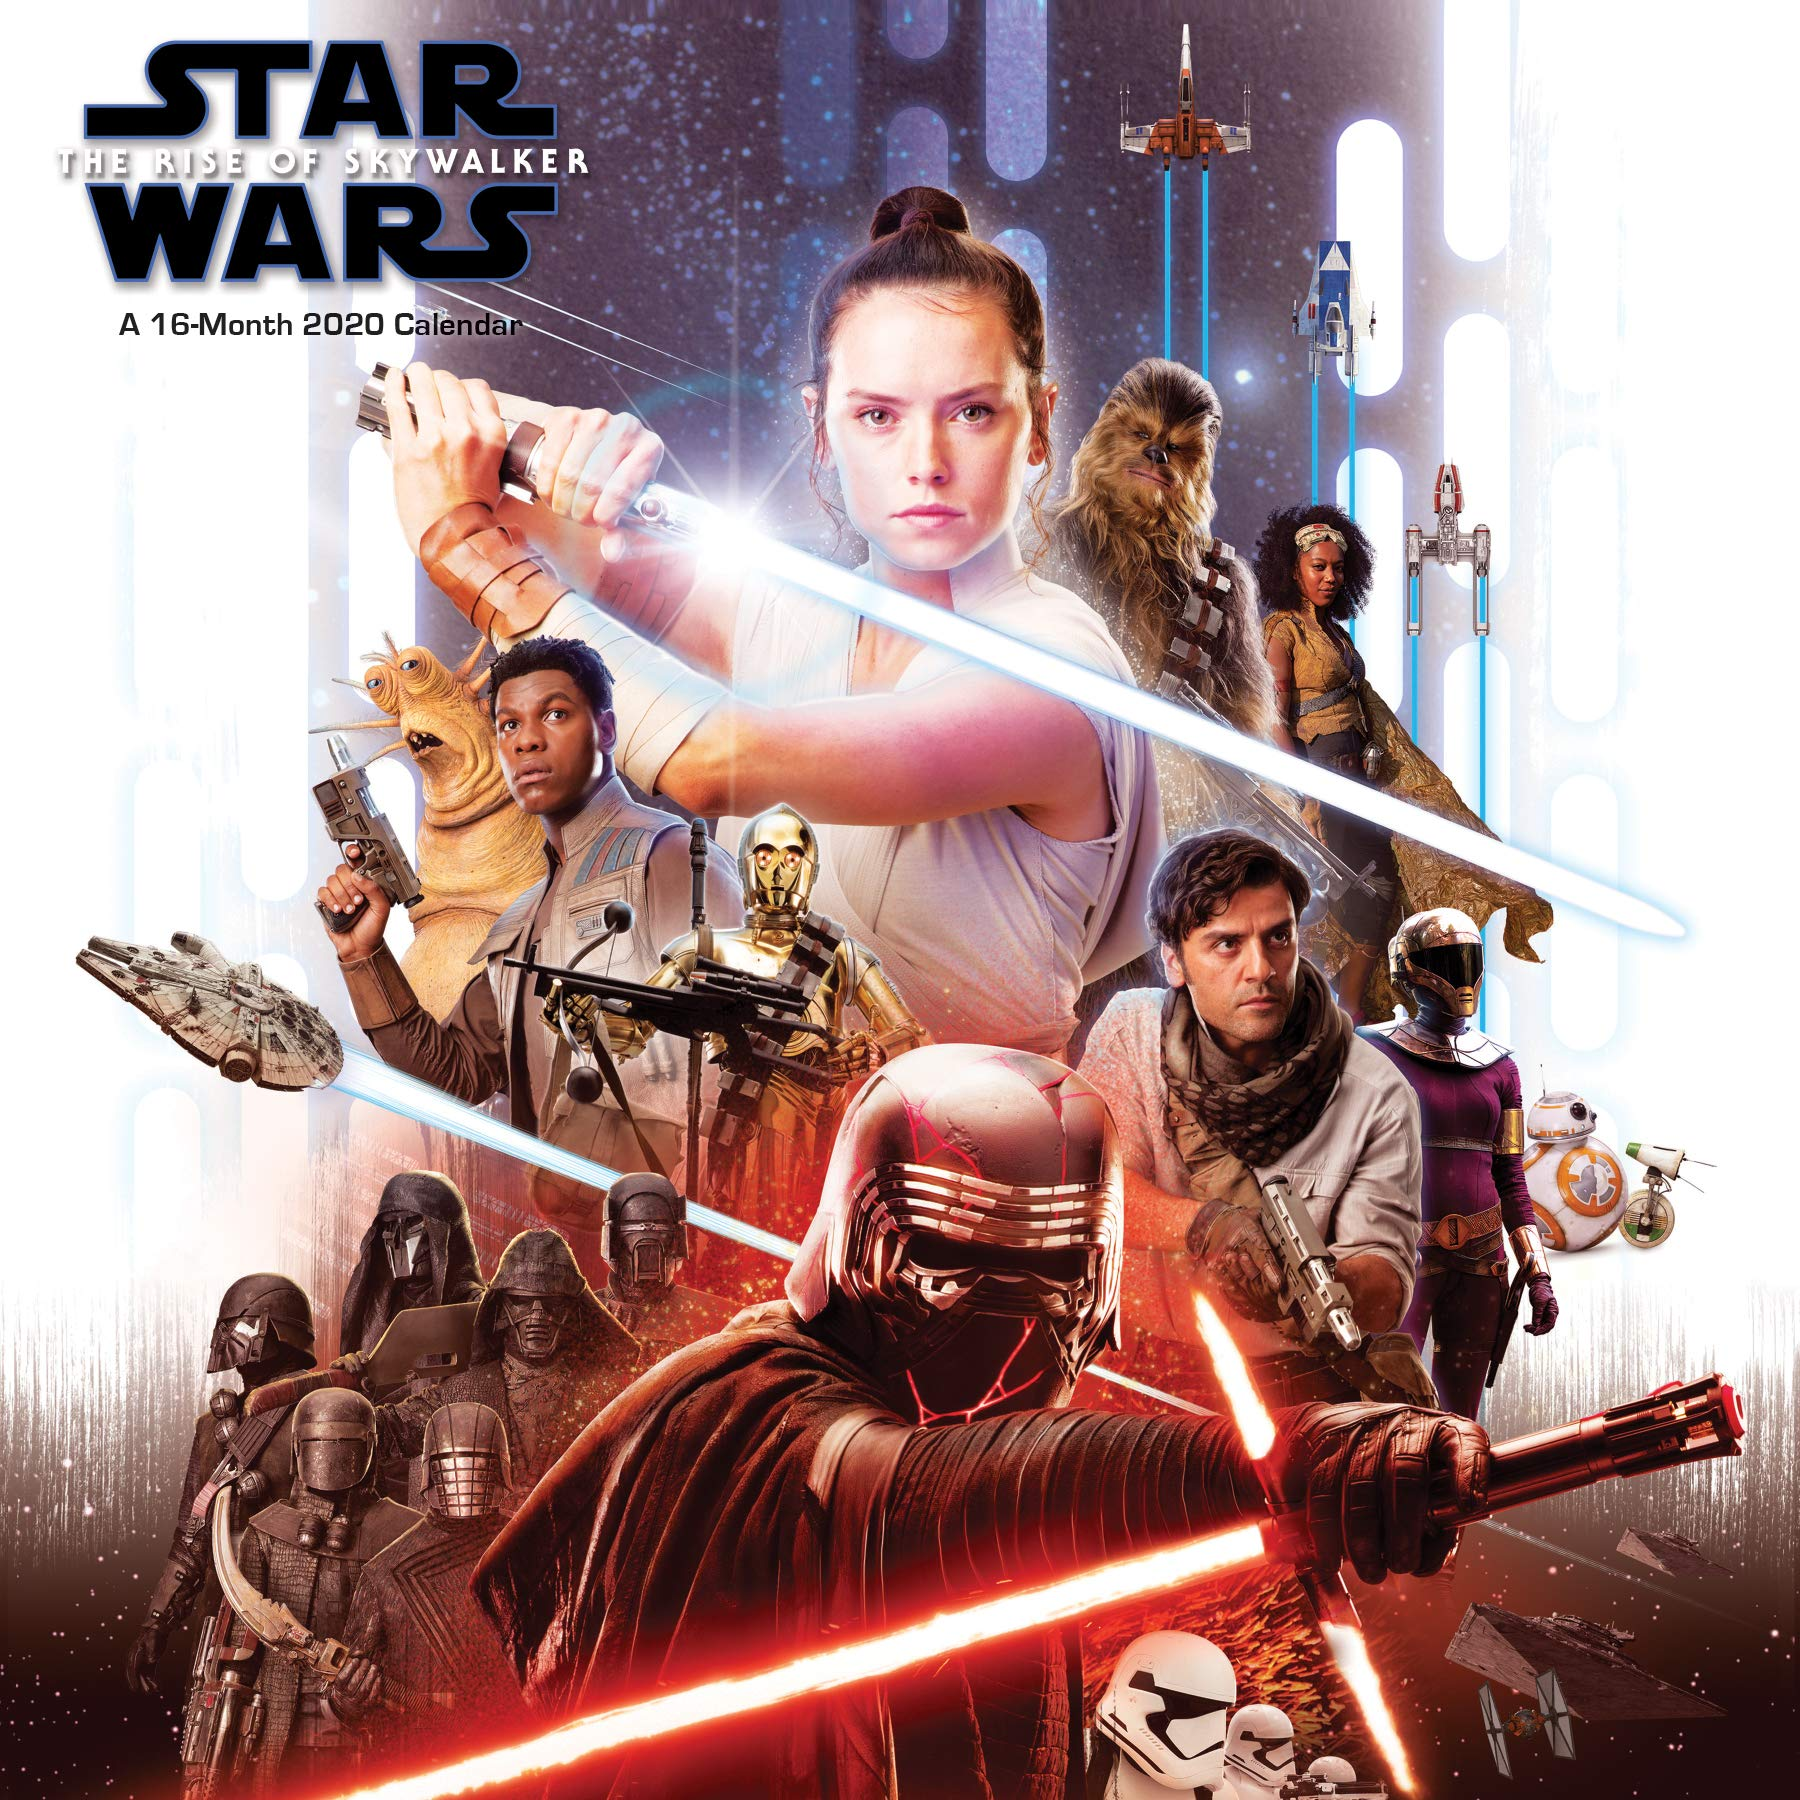 Star Wars The Rise Of Skywalker 2020 Wall Calendar Trends International 0057668204639 Amazon Com Books